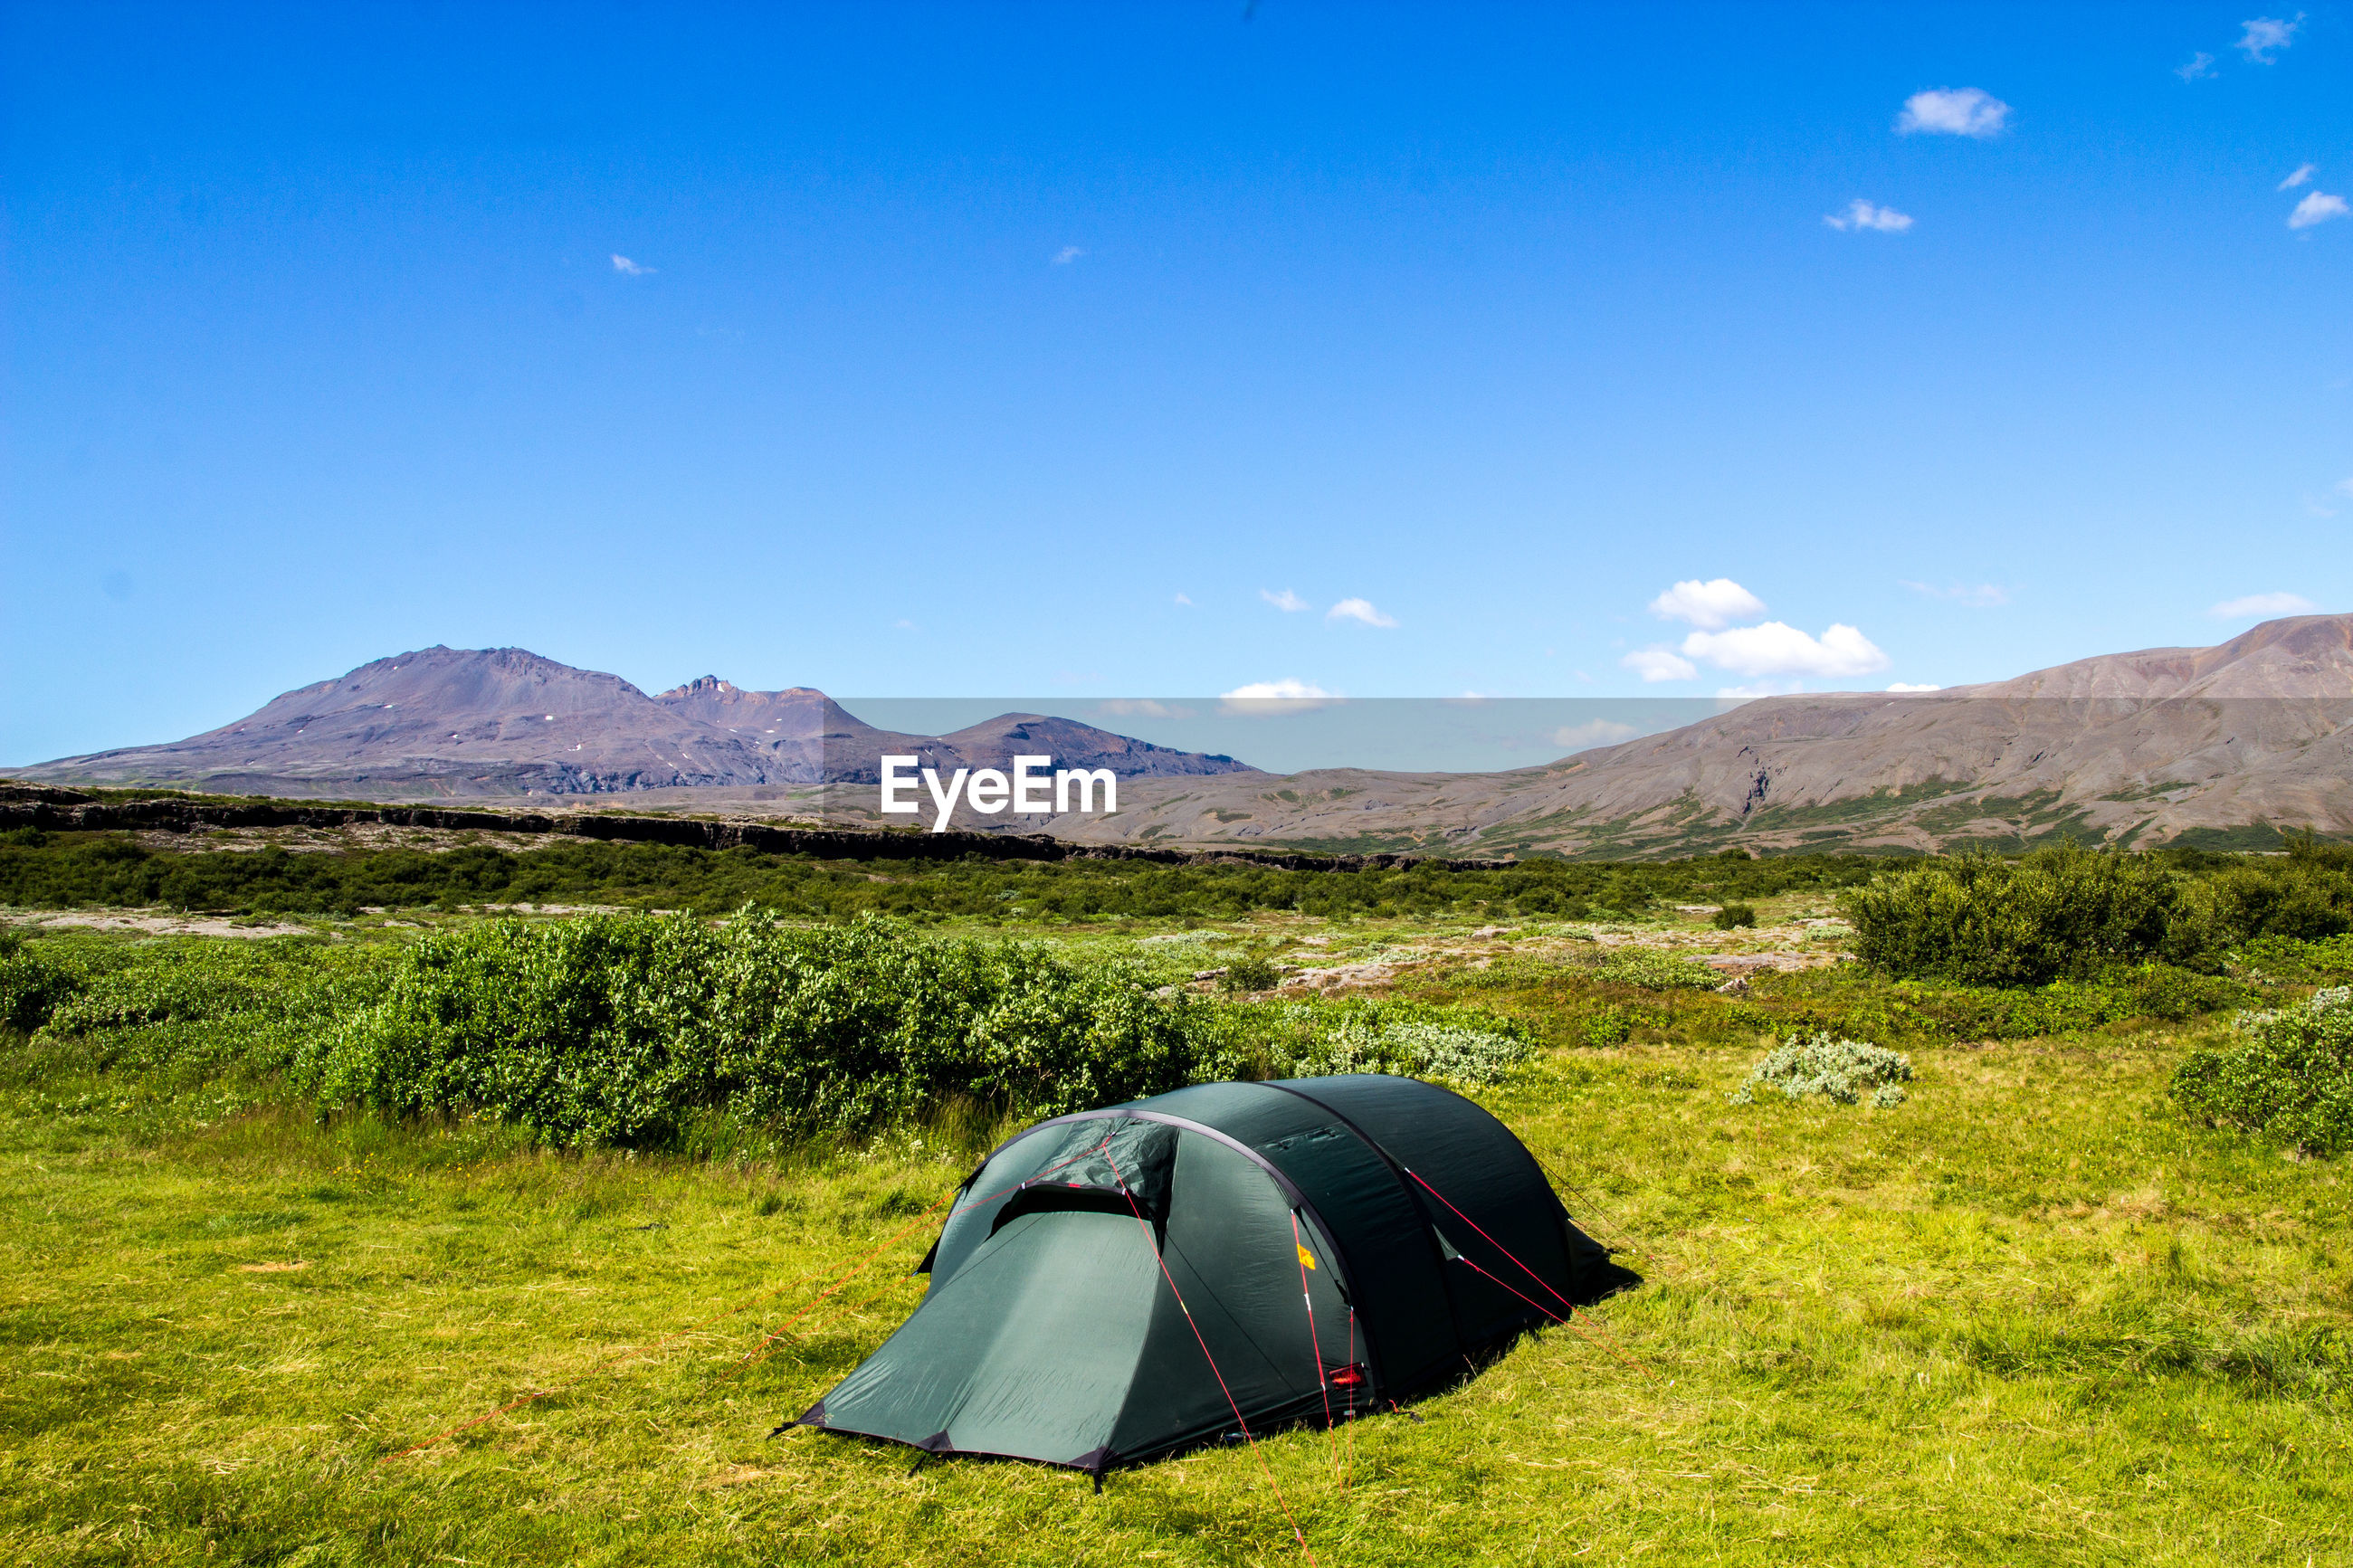 High angle view of tent on grassy mountain against sky